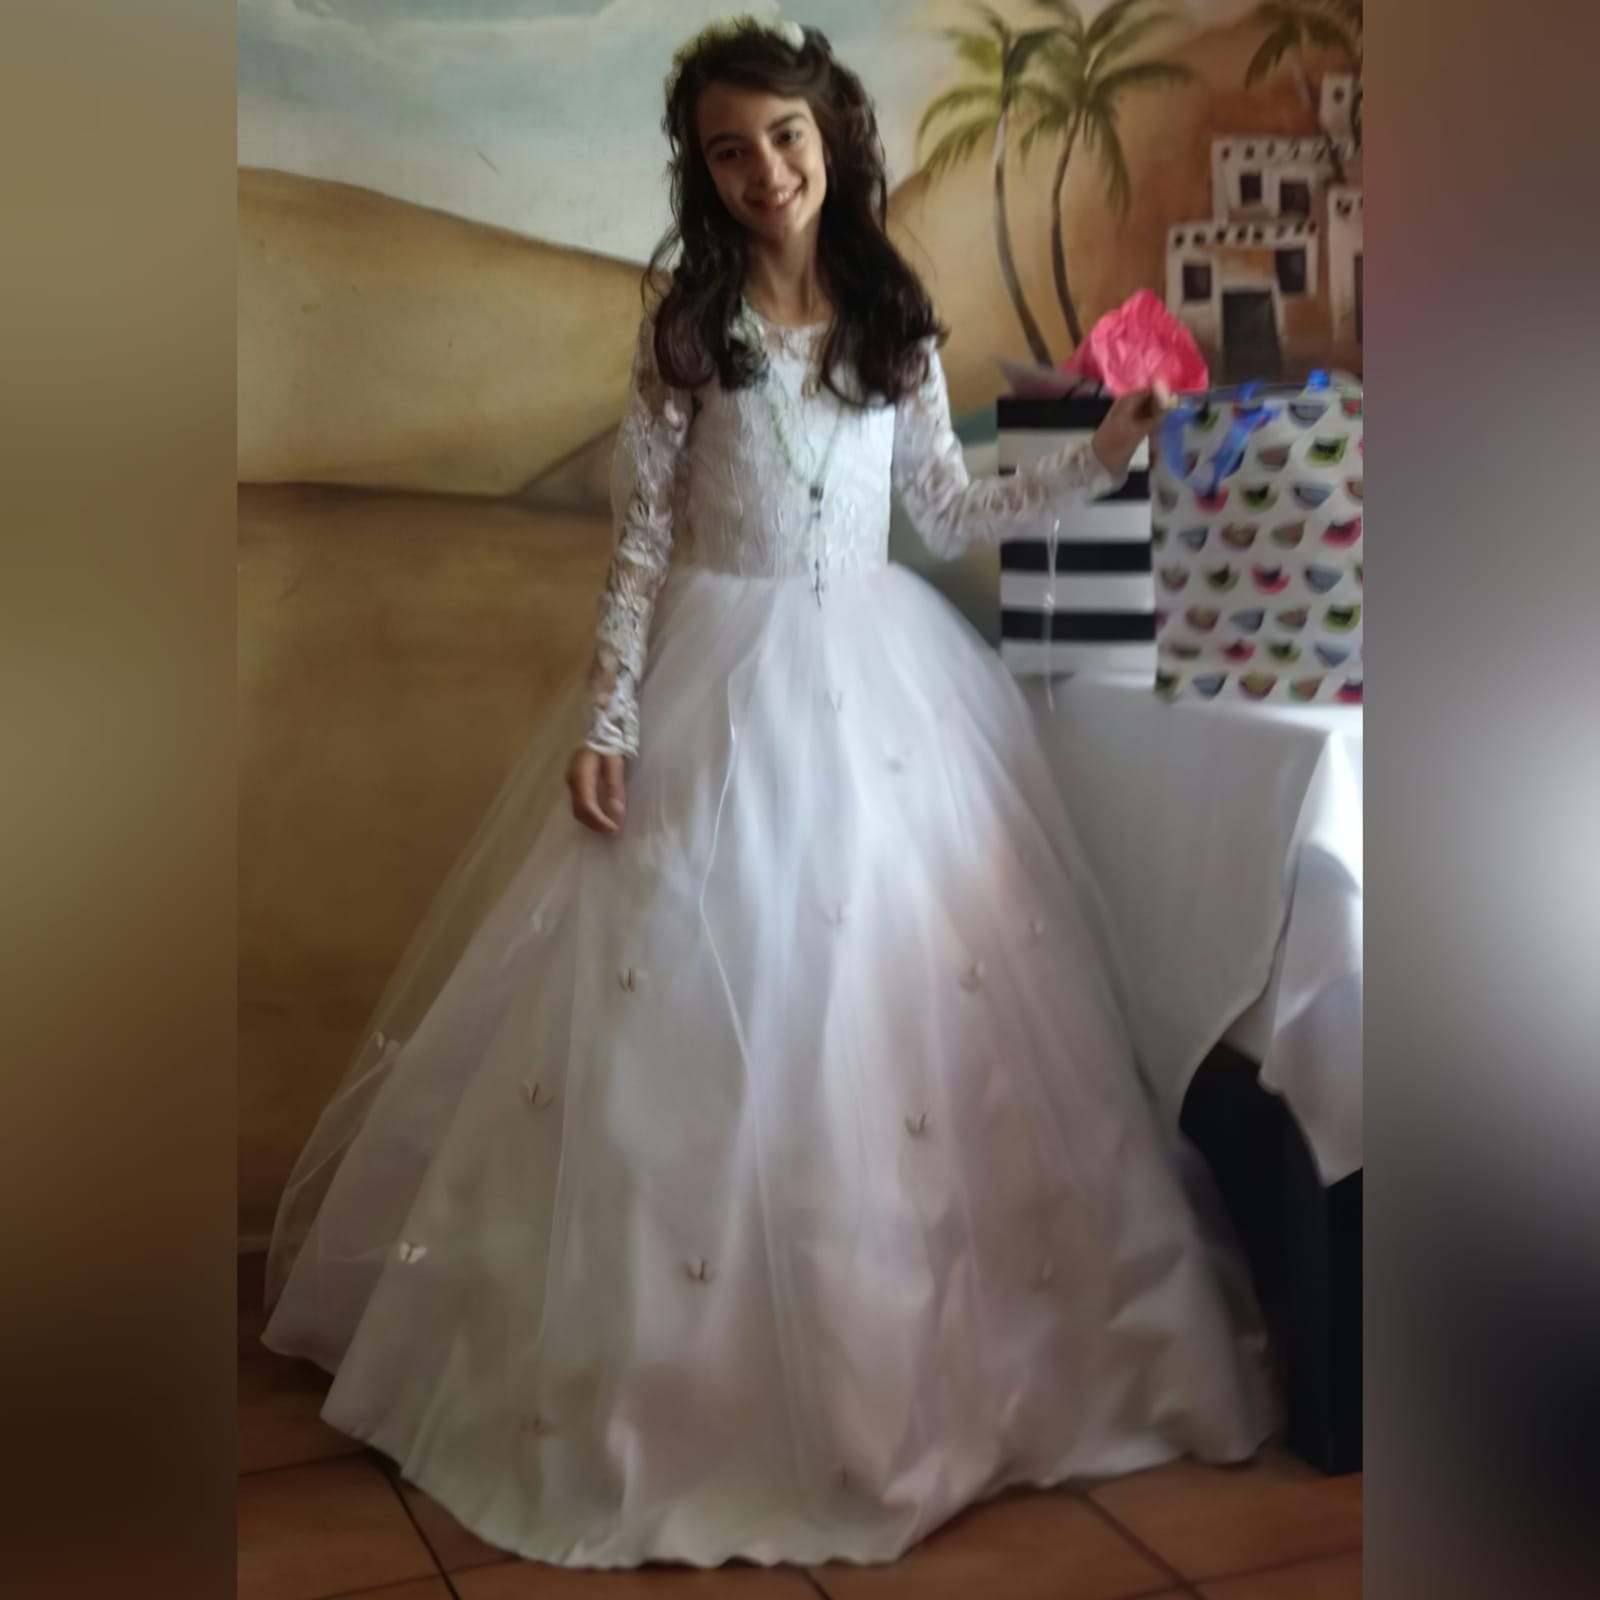 White holy communion ball gown dress 7 white holy communion ball gown dress. With a lace bodice. Long lace sleeves. Holy communion dress detailed with butterflies.